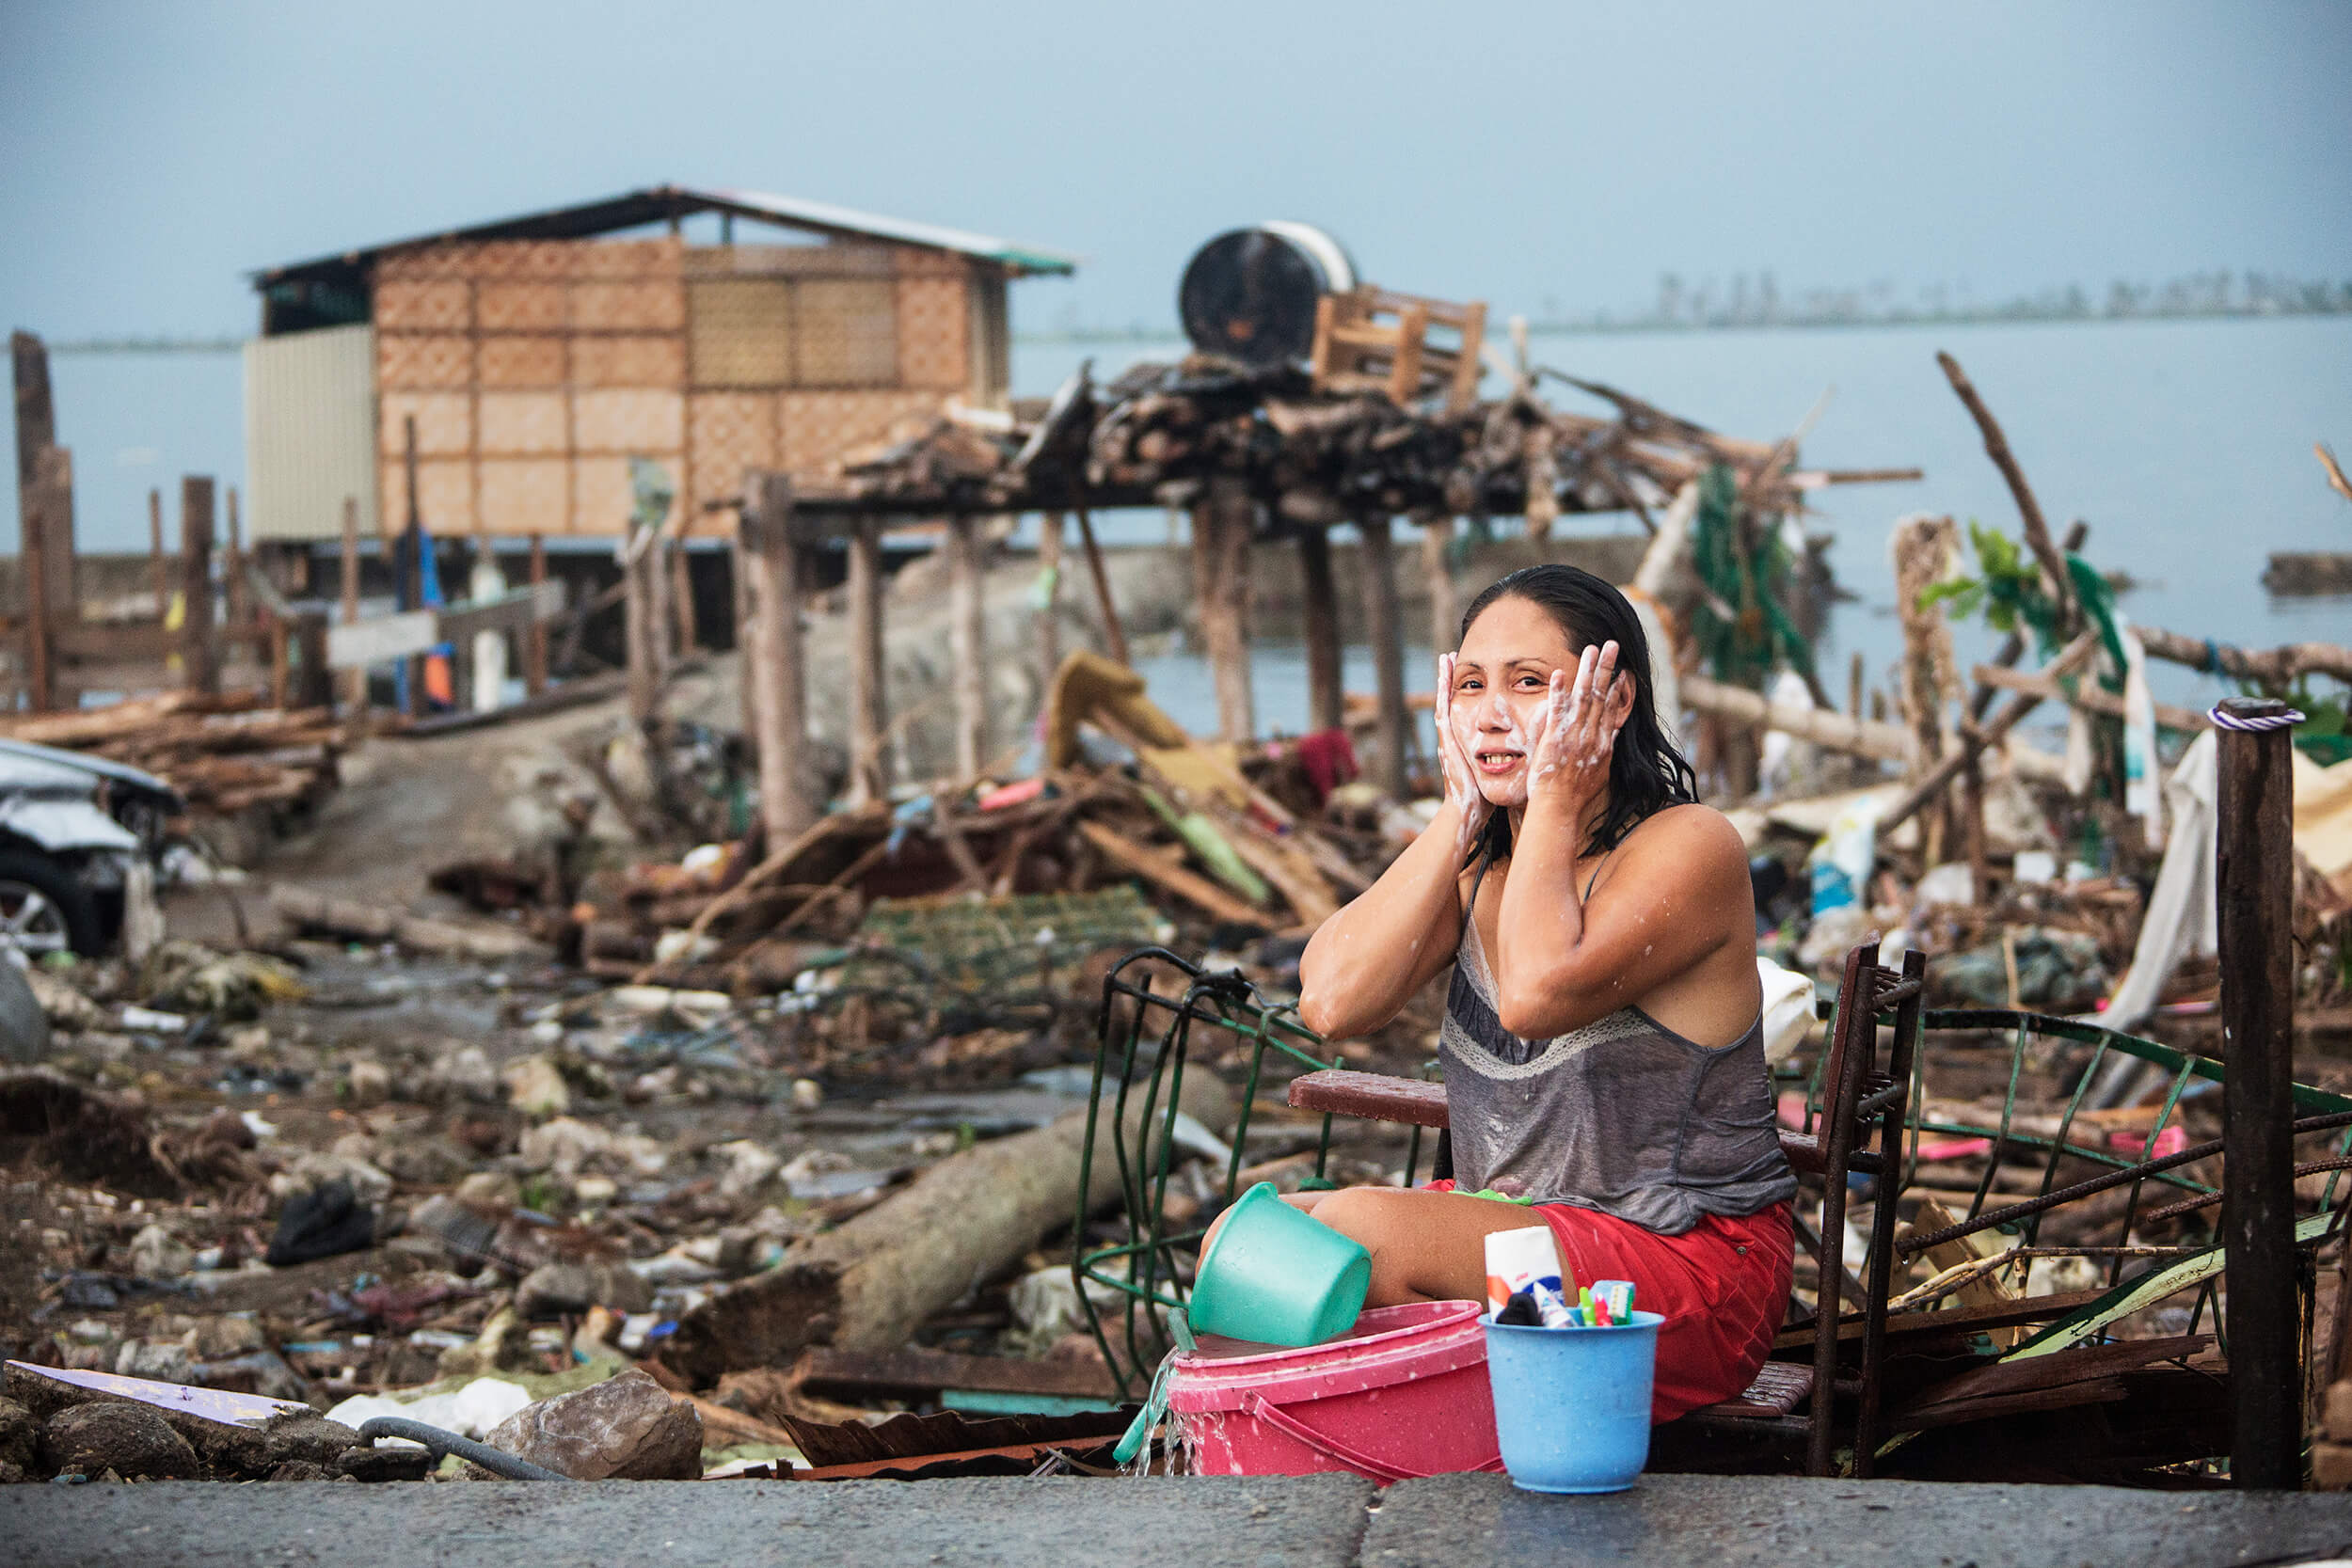 The city of Tacloban after Typhoon Haiyan November 2013.